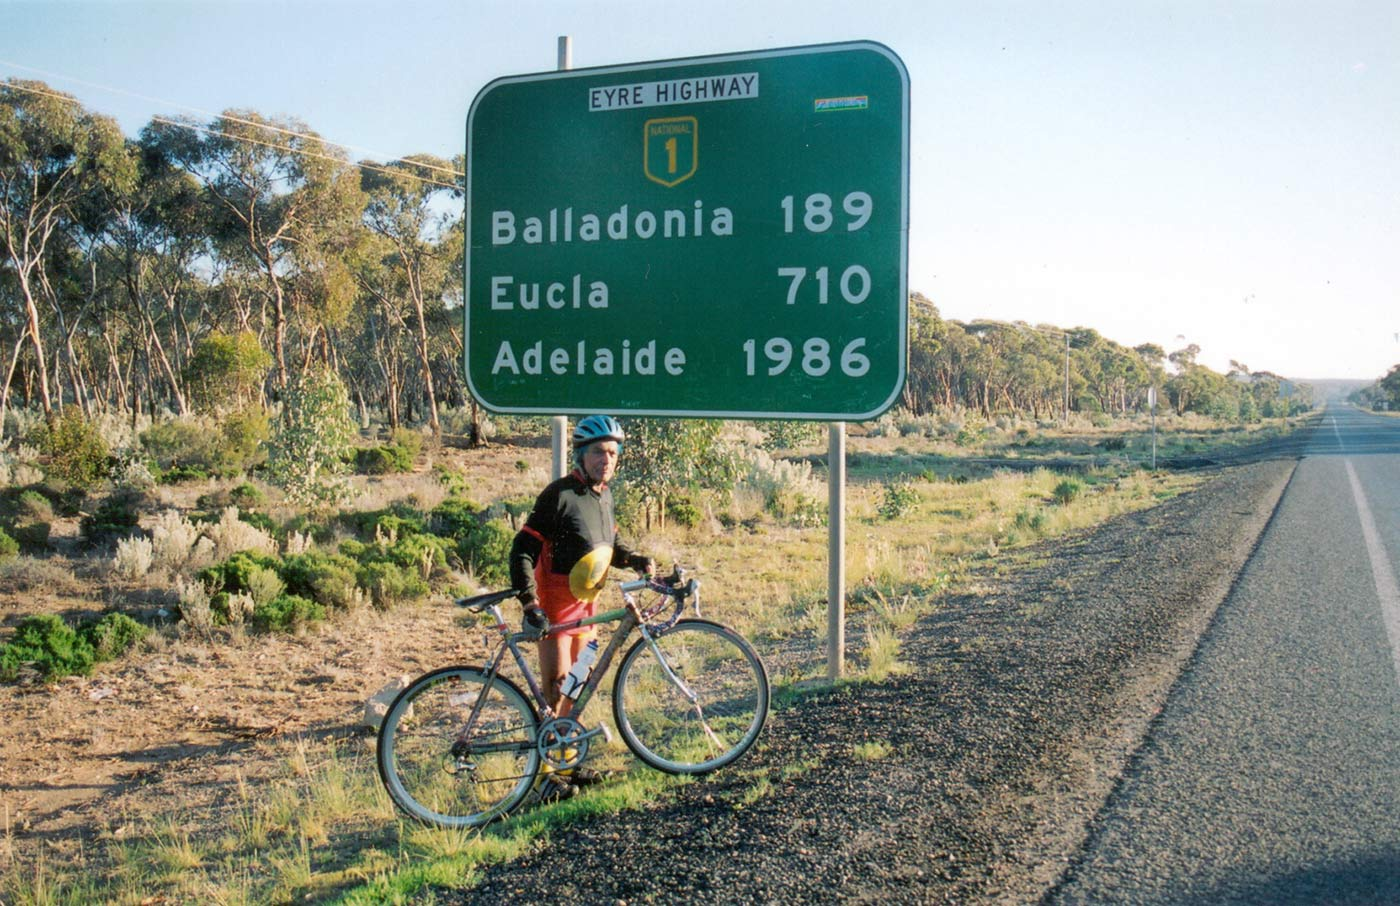 A colour photo of Alby Clarke on his bicycle at the start of the Nullabor Plain.  He is next to a road sign which reads: 'Eyre Highway, Balladonia 189, Eucla 710, Adelaide 1986. - click to view larger image